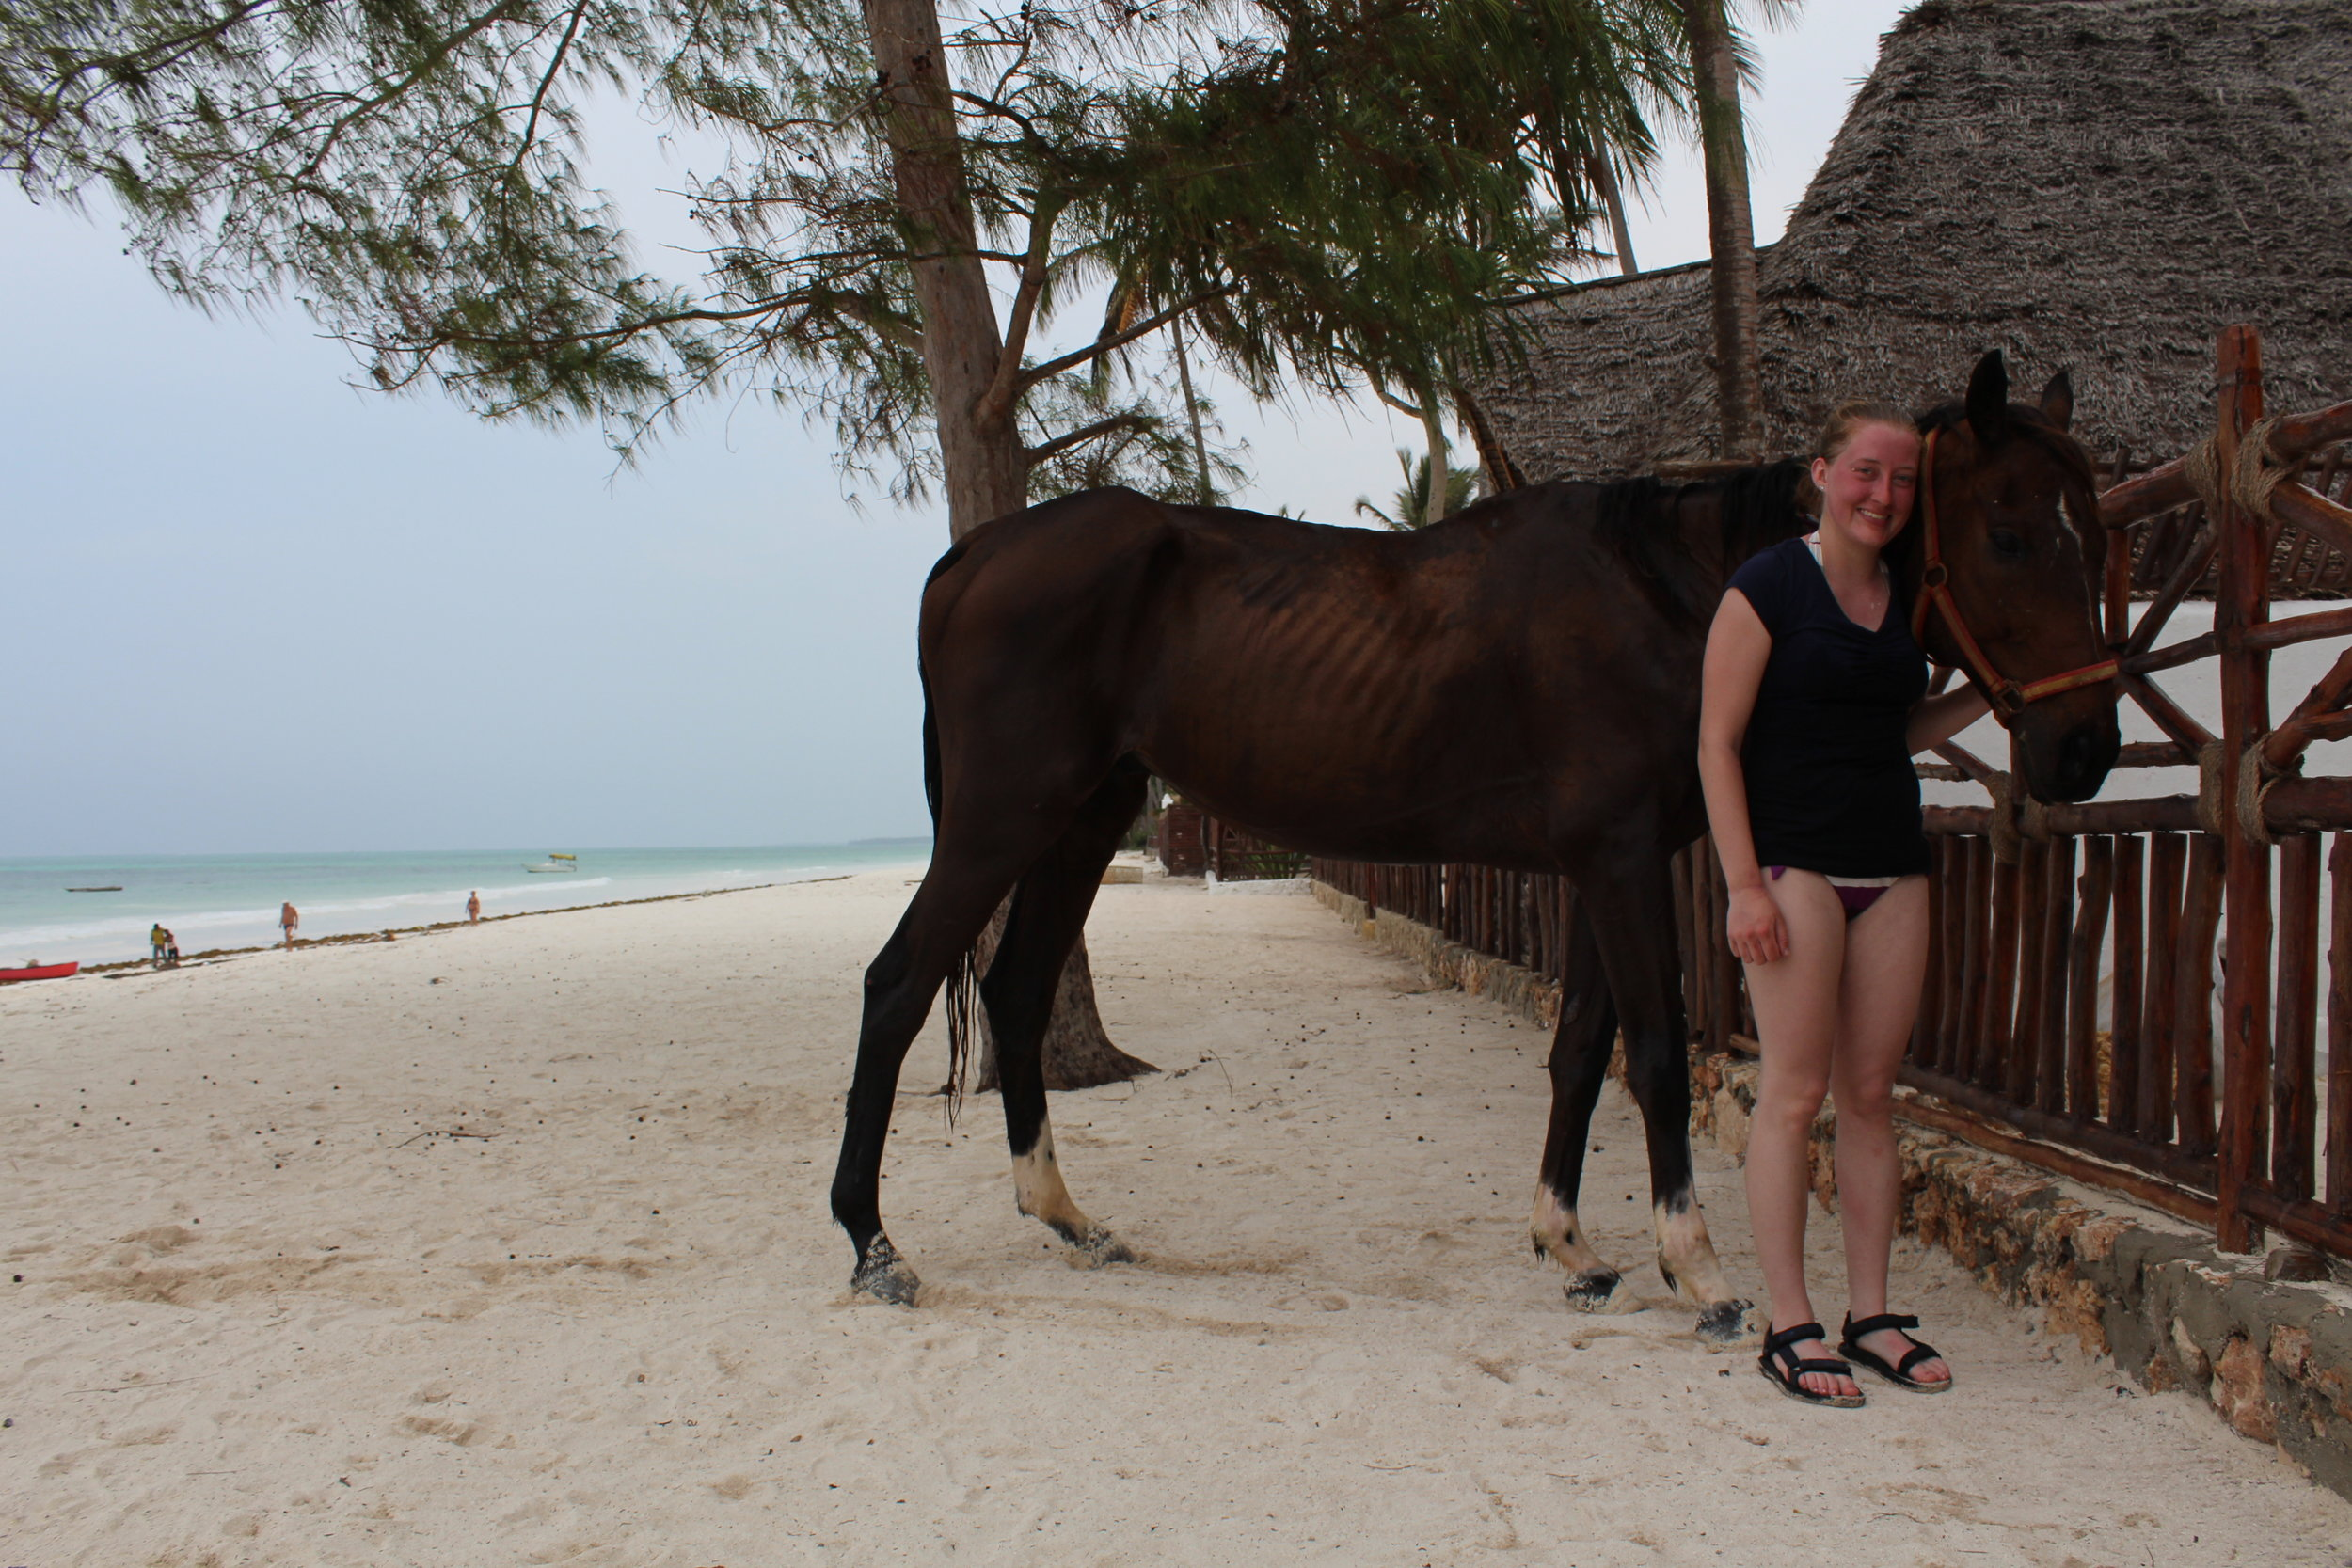 With my horse after our swim. I wish he wasn't so skinny, I felt bad seeing his ribs sticking out.